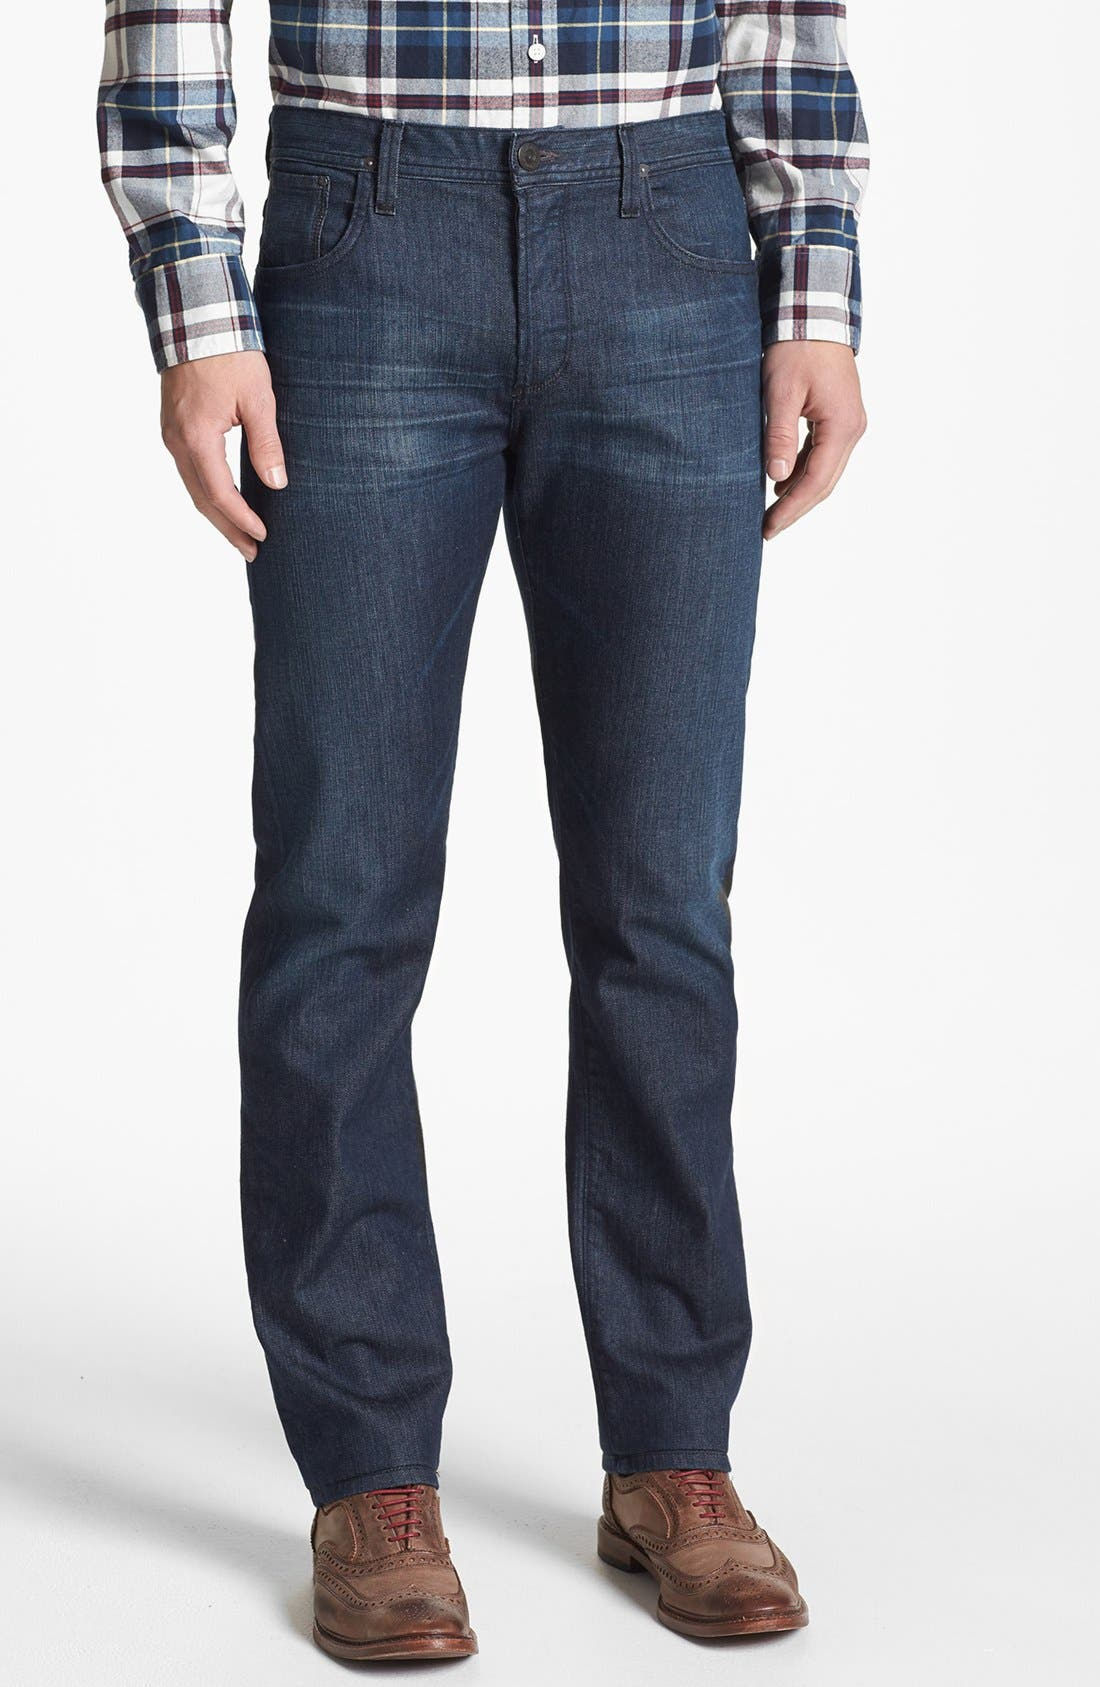 Main Image - Citizens of Humanity 'Core' Slim Fit Jeans (Alvin)